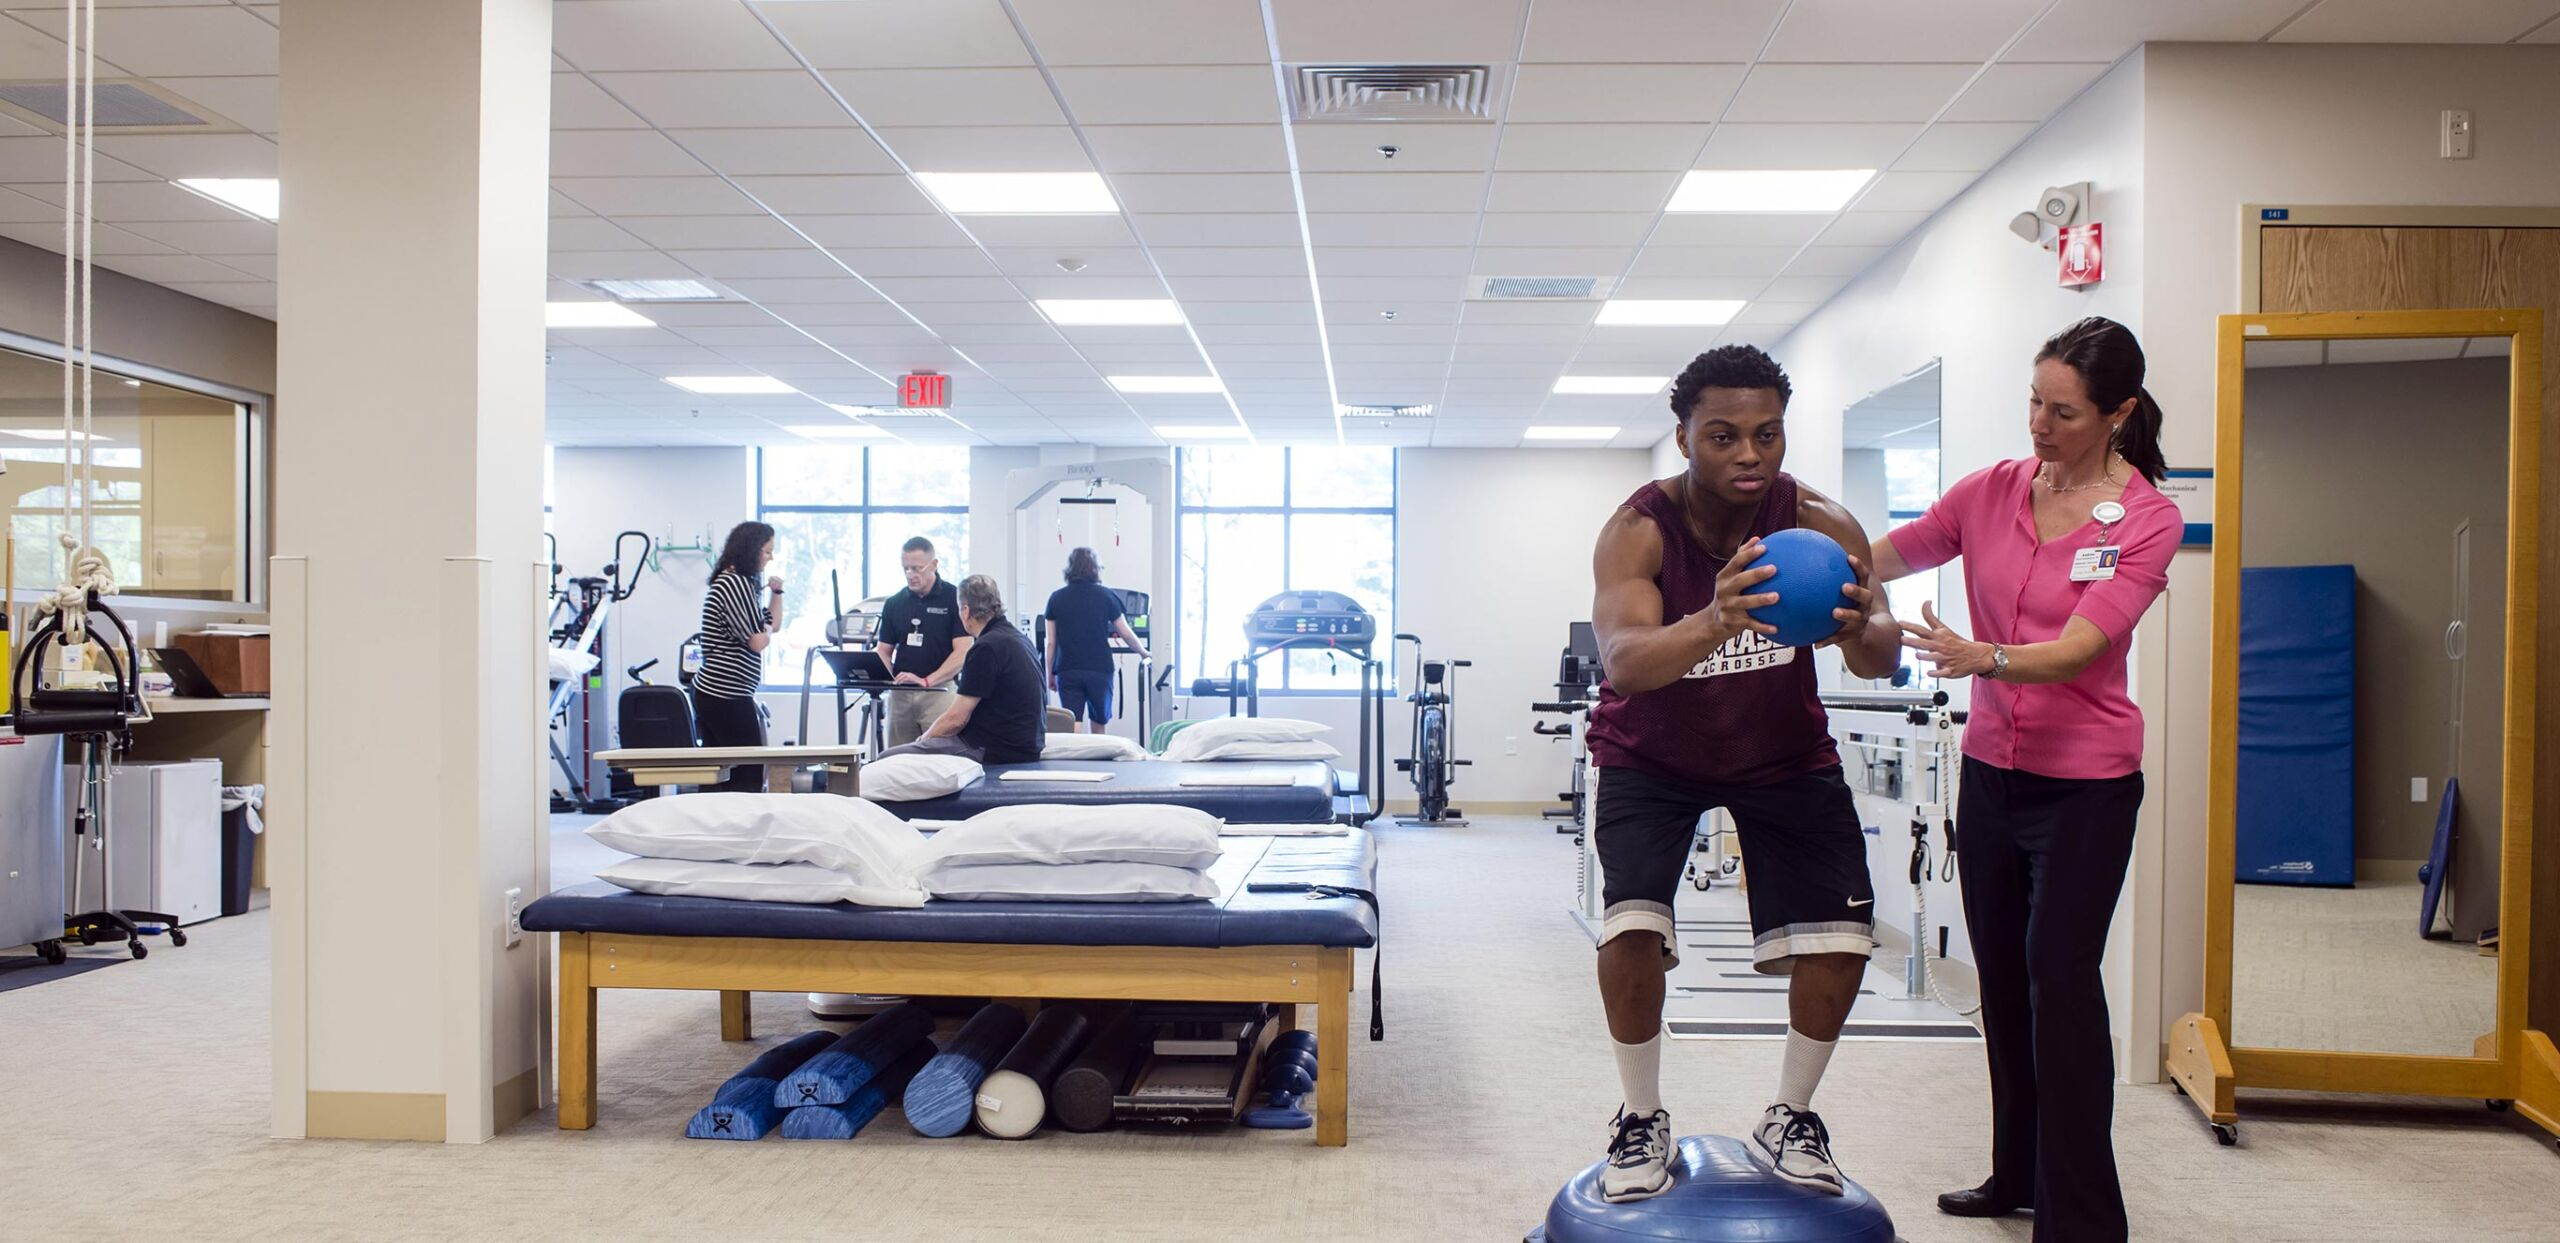 Female physical therapist helps male patient perform balance exercises, Rehabilitation Services at Cooley Dickinson Health Care include Physical Therapy, Occupational Therapy and Speech and Language Pathology.